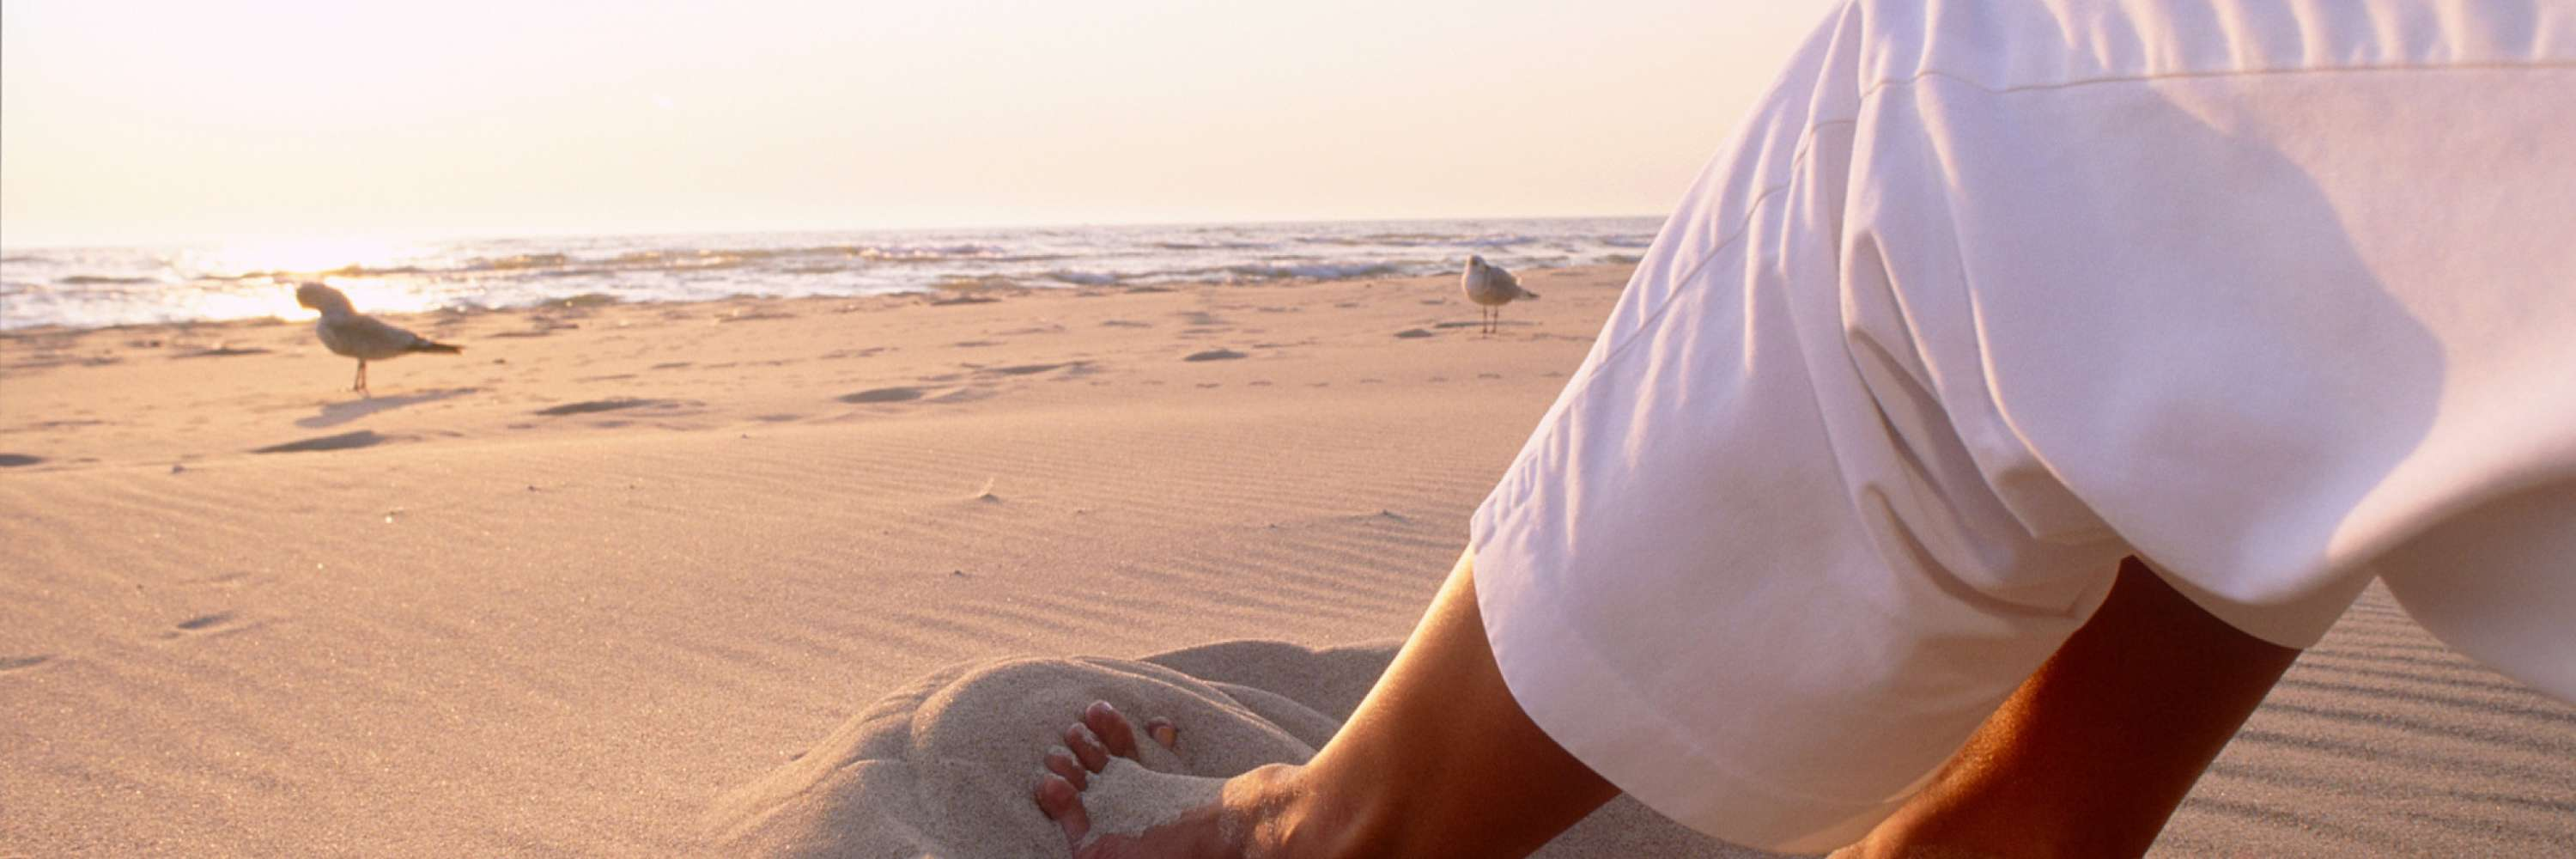 person wearing white pants with feet in the sand